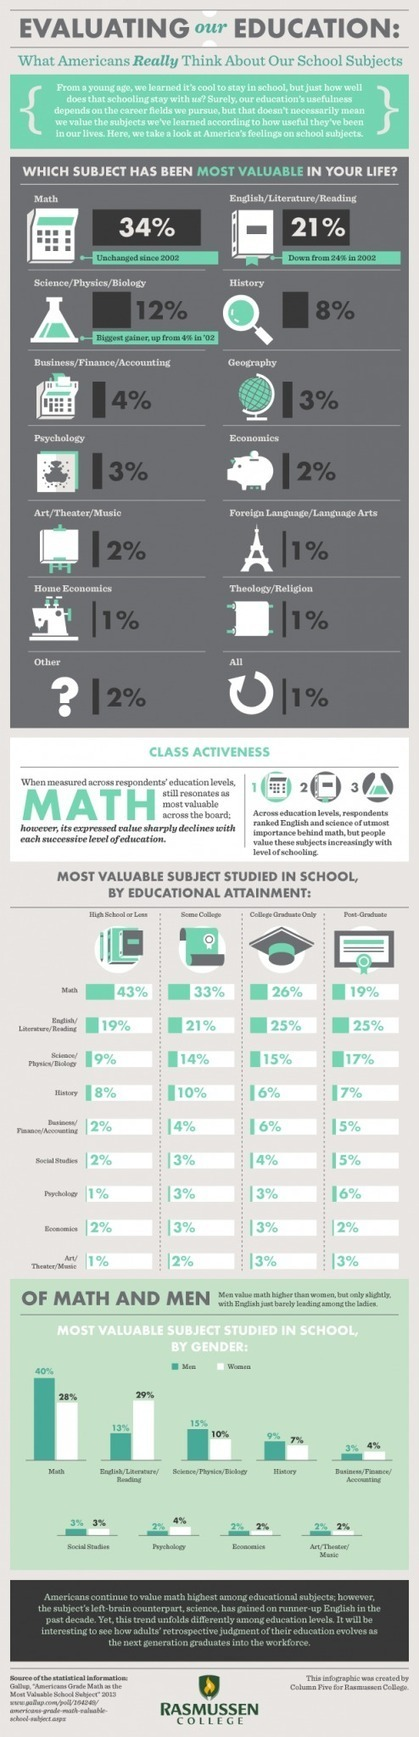 Americans U.S. Education Review Infographic | Secondary Education | Scoop.it